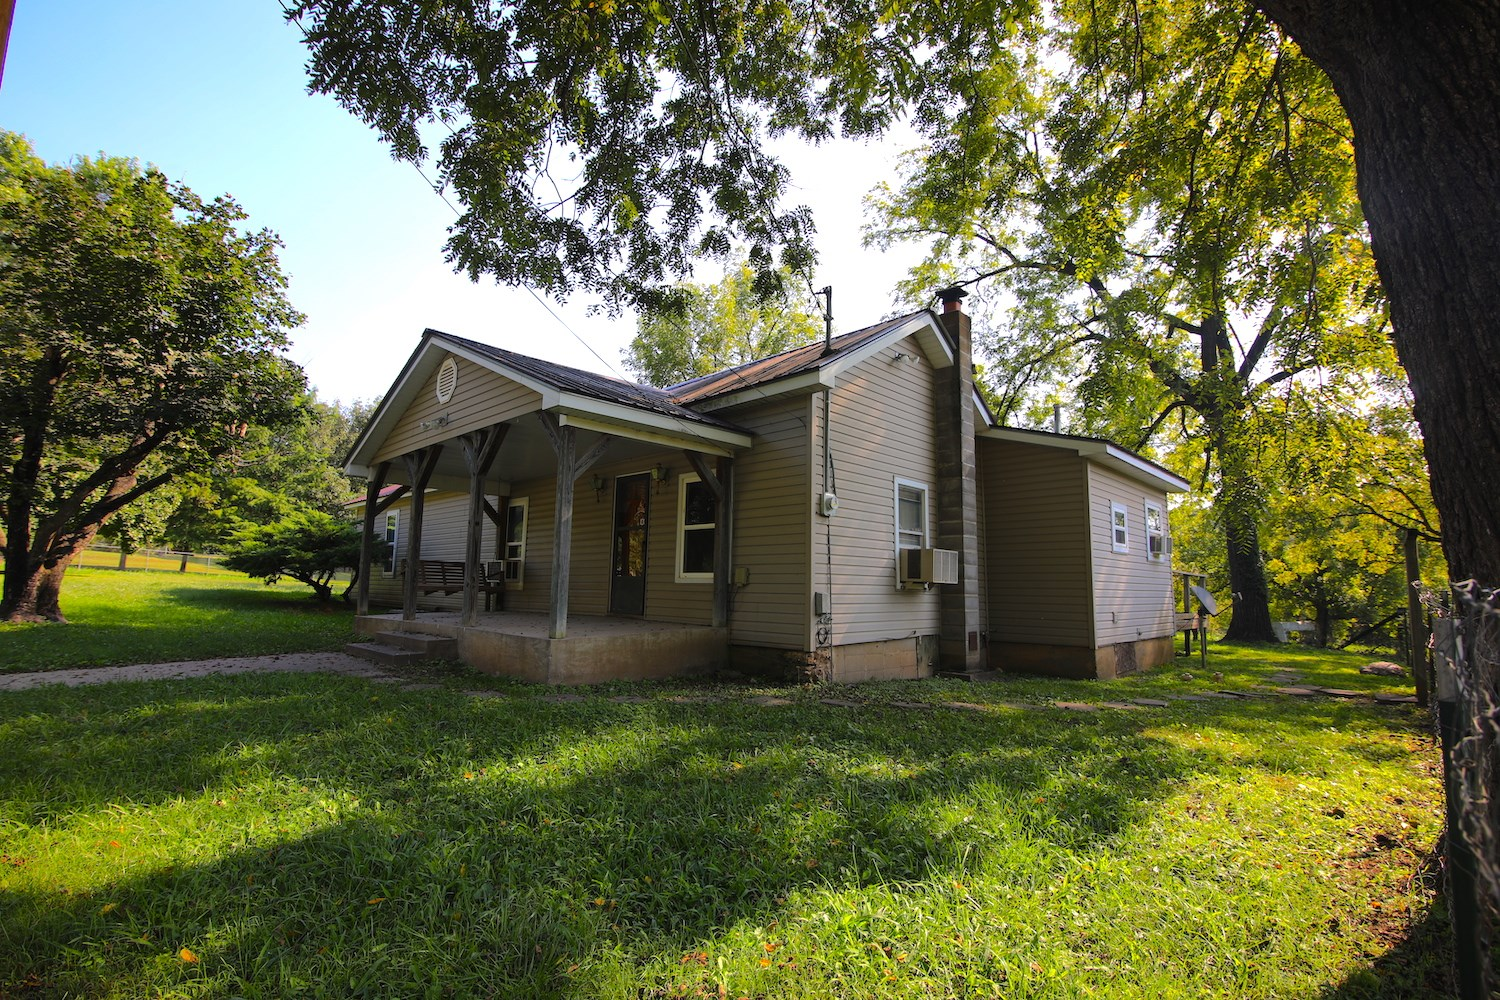 Small Hobby Farm for Sale in Thayer Missouri